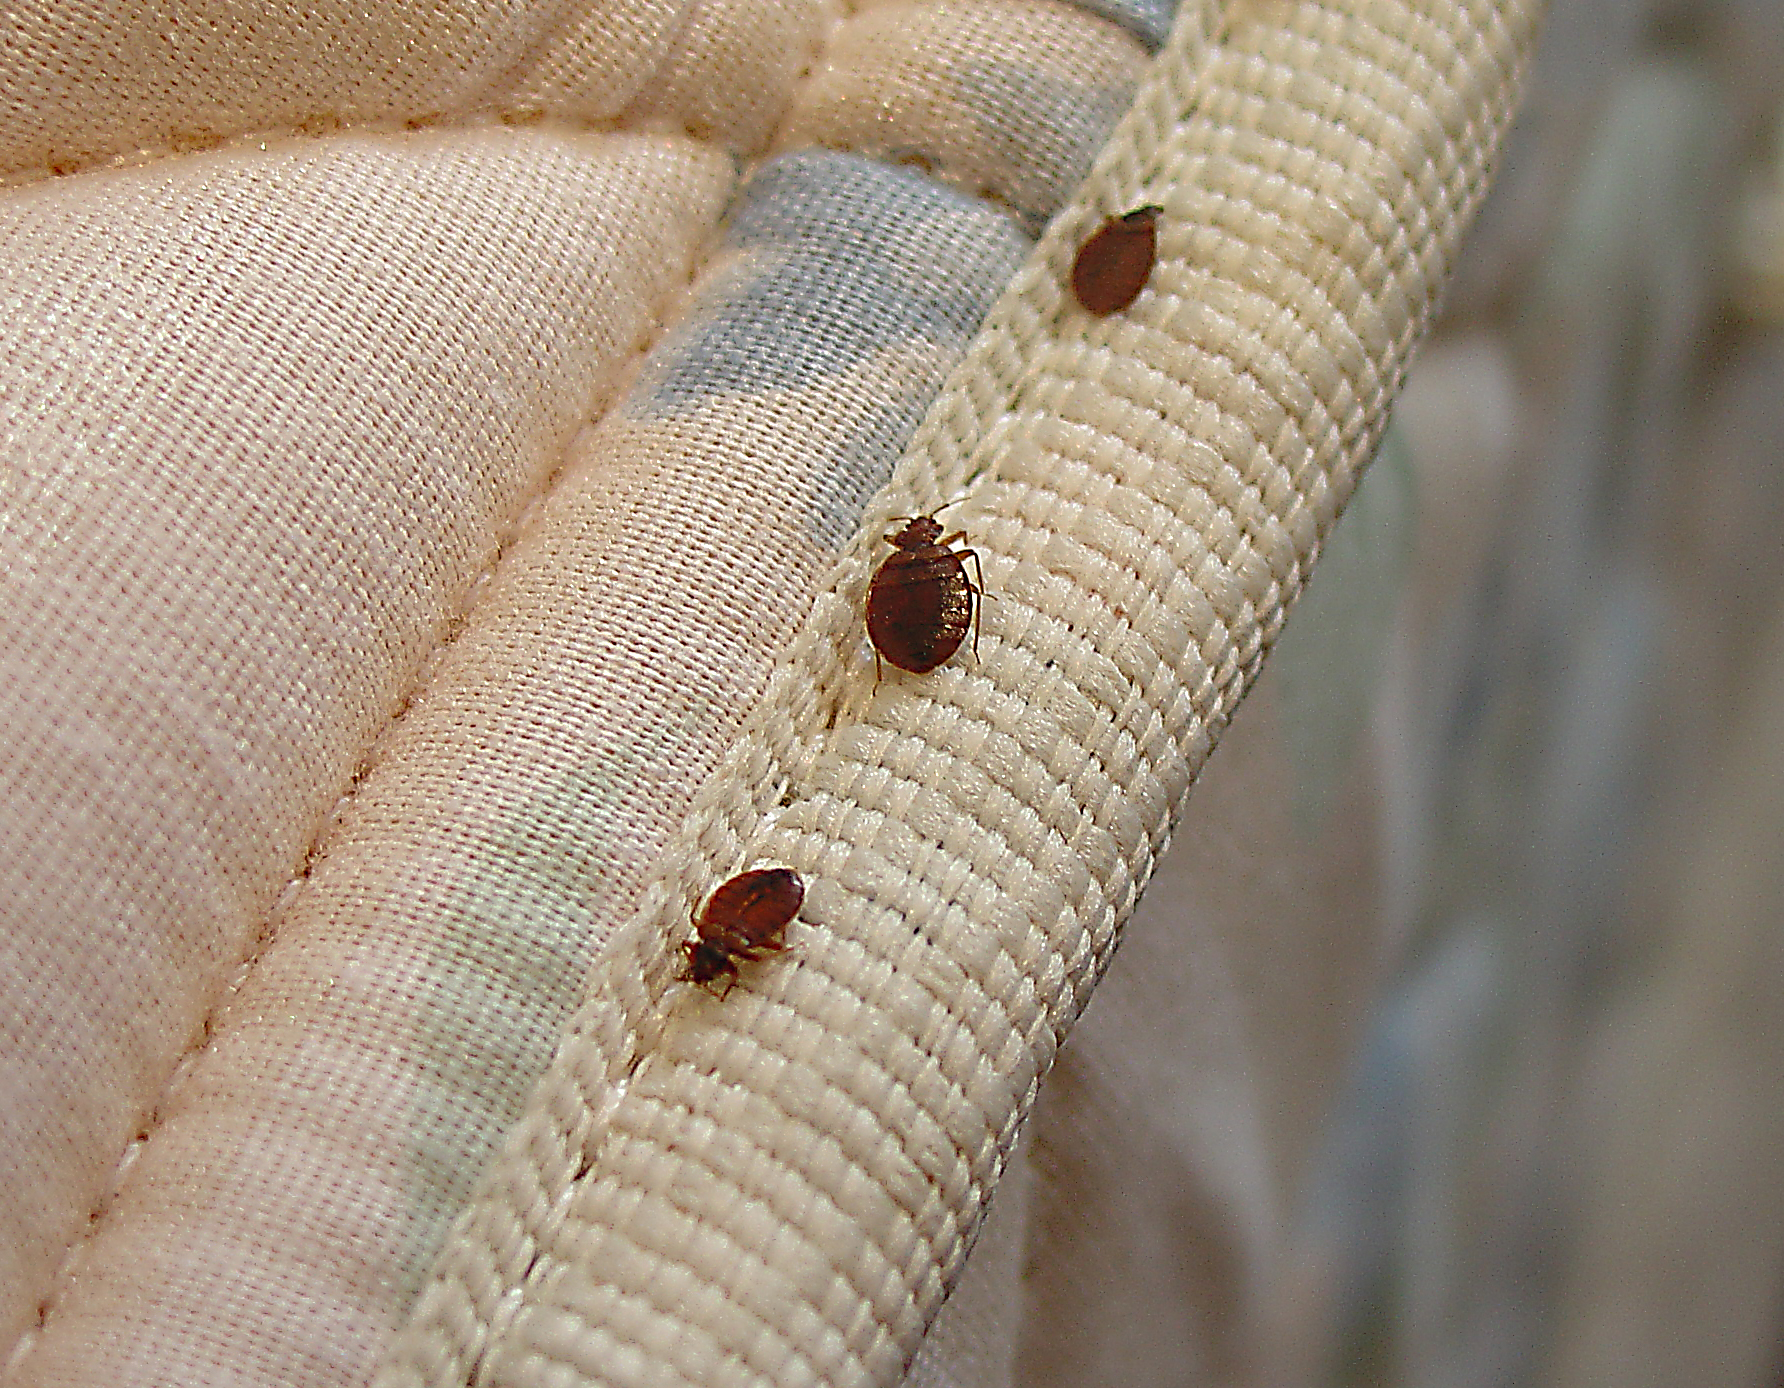 Getting Rid of Bed Bugs – 10 Places Bed Bugs Love To Hide!